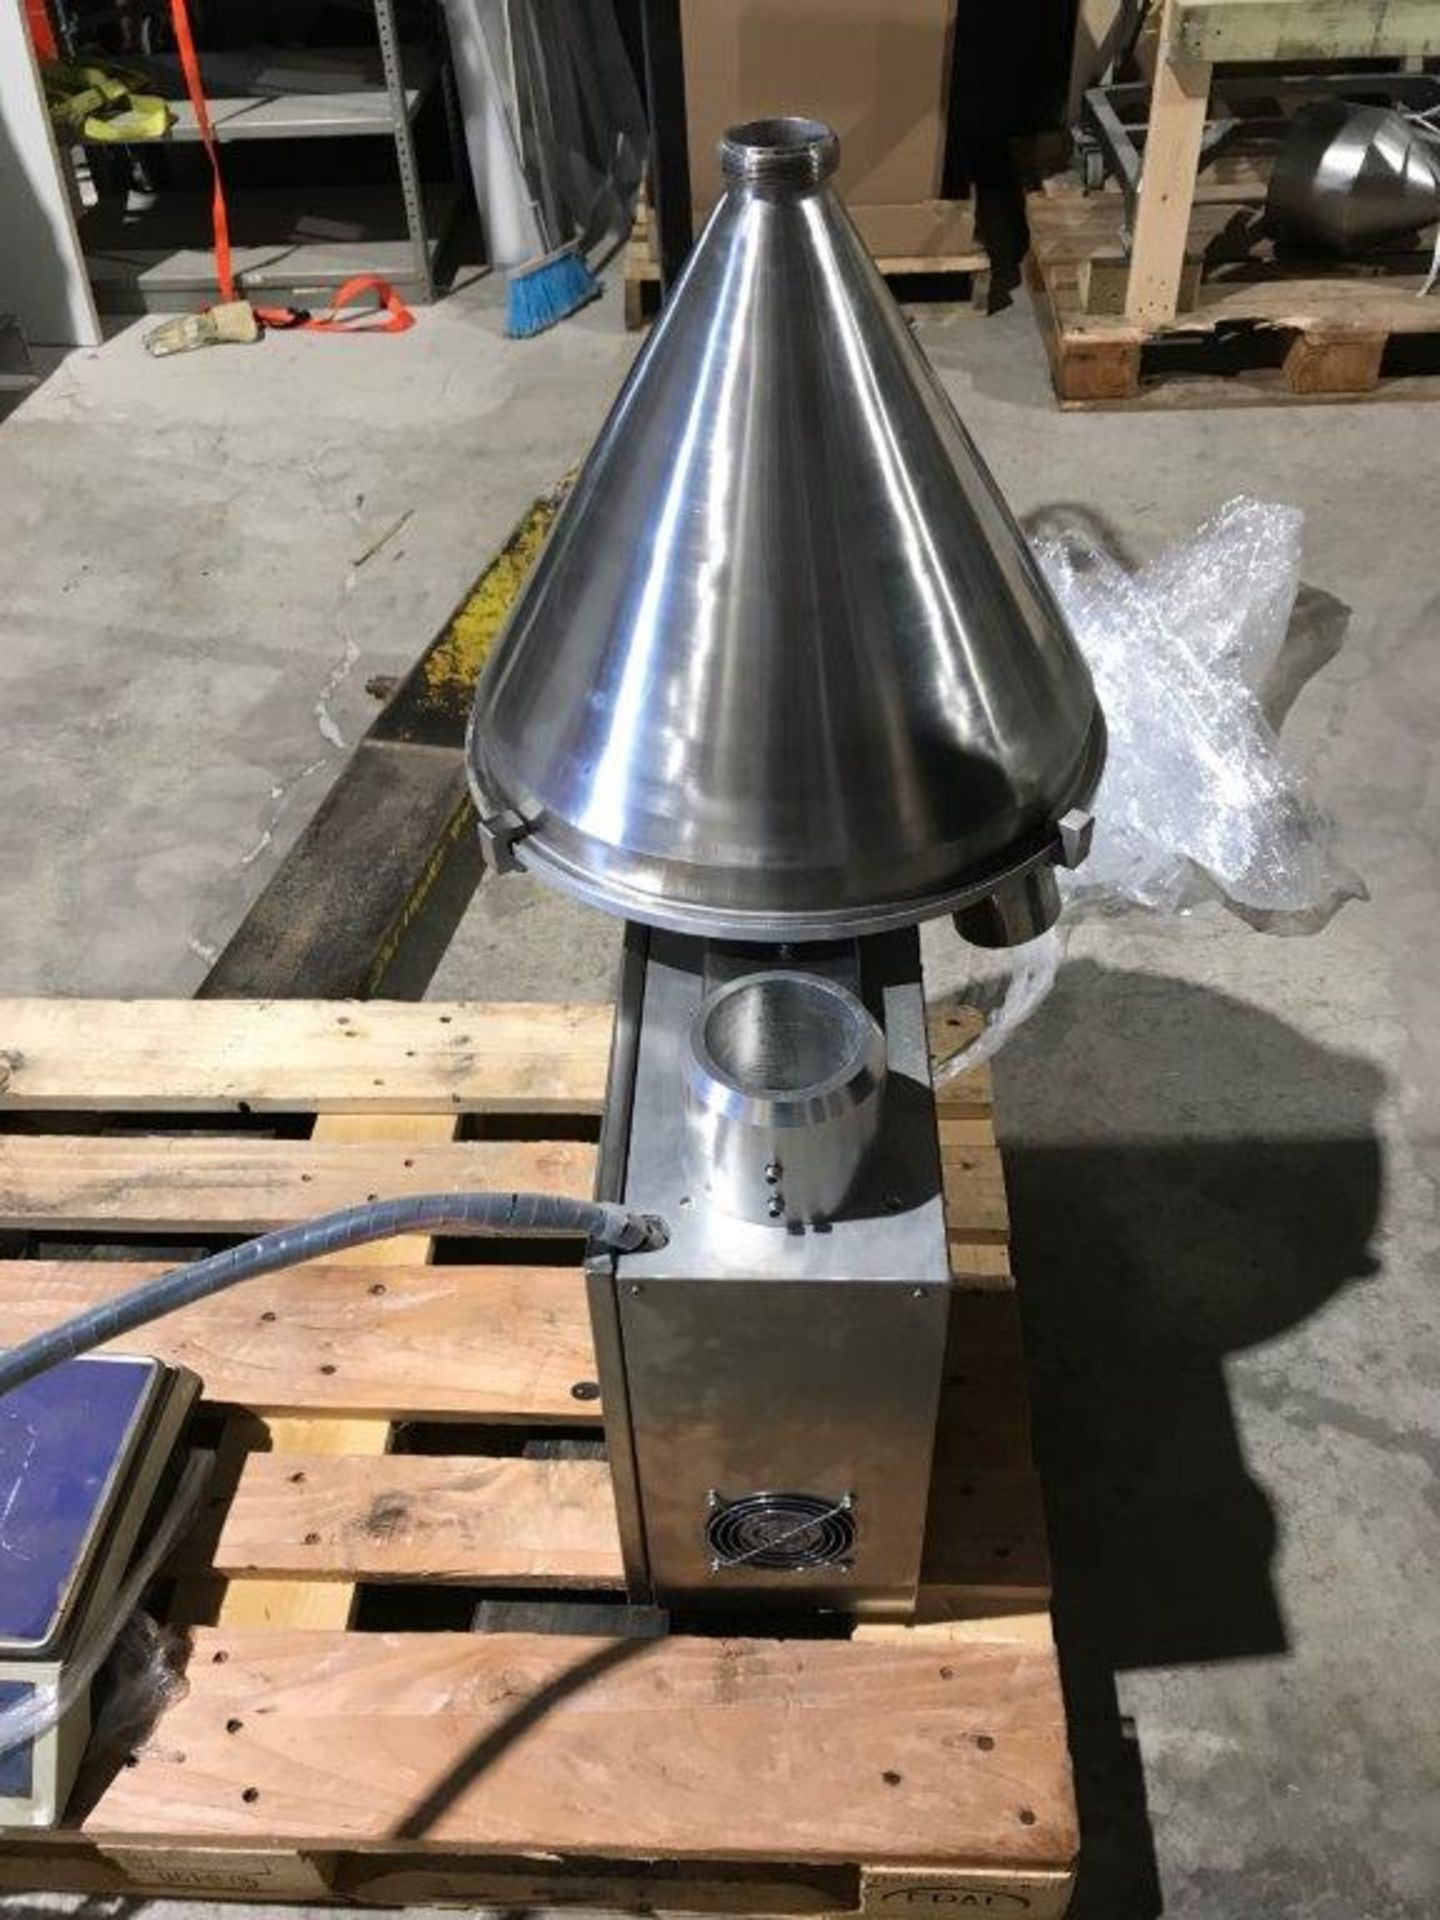 CFB-5 AUGER FILLER. 1 TO 500 g FILL RANGE, PROGRAMMABLE CONTROLS- LOCATION - AURORA, ONTARIO - Image 2 of 4